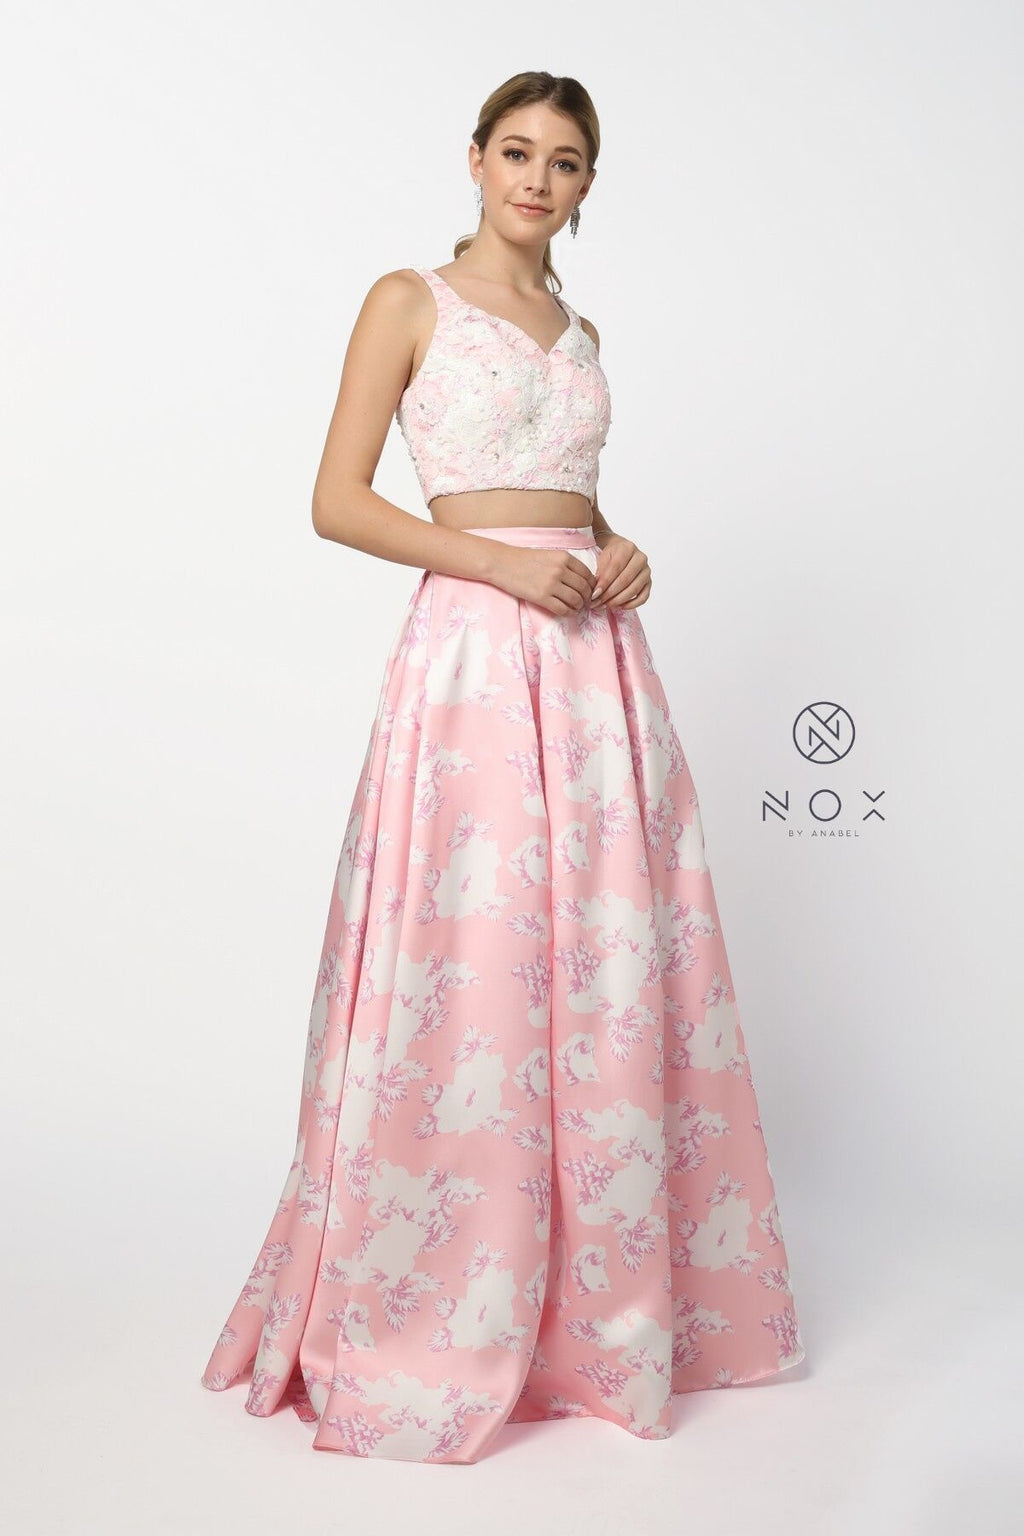 Nox Anabel 8312 Two-Piece Floral Evening Gown - CYC Boutique